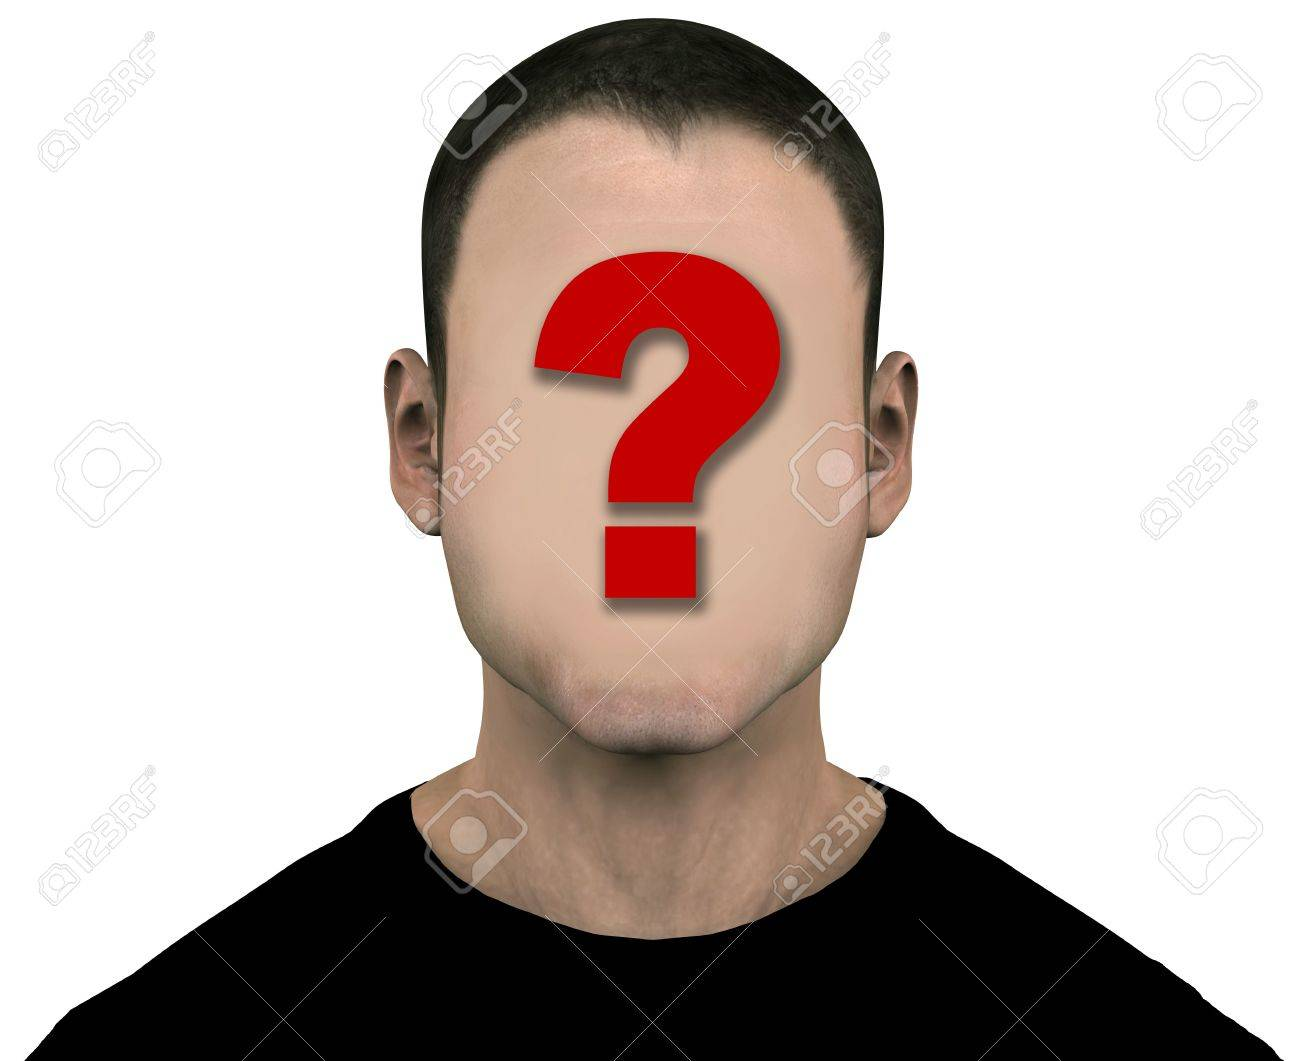 Easily erase the question mark Blank Profile Picture With Question Mark